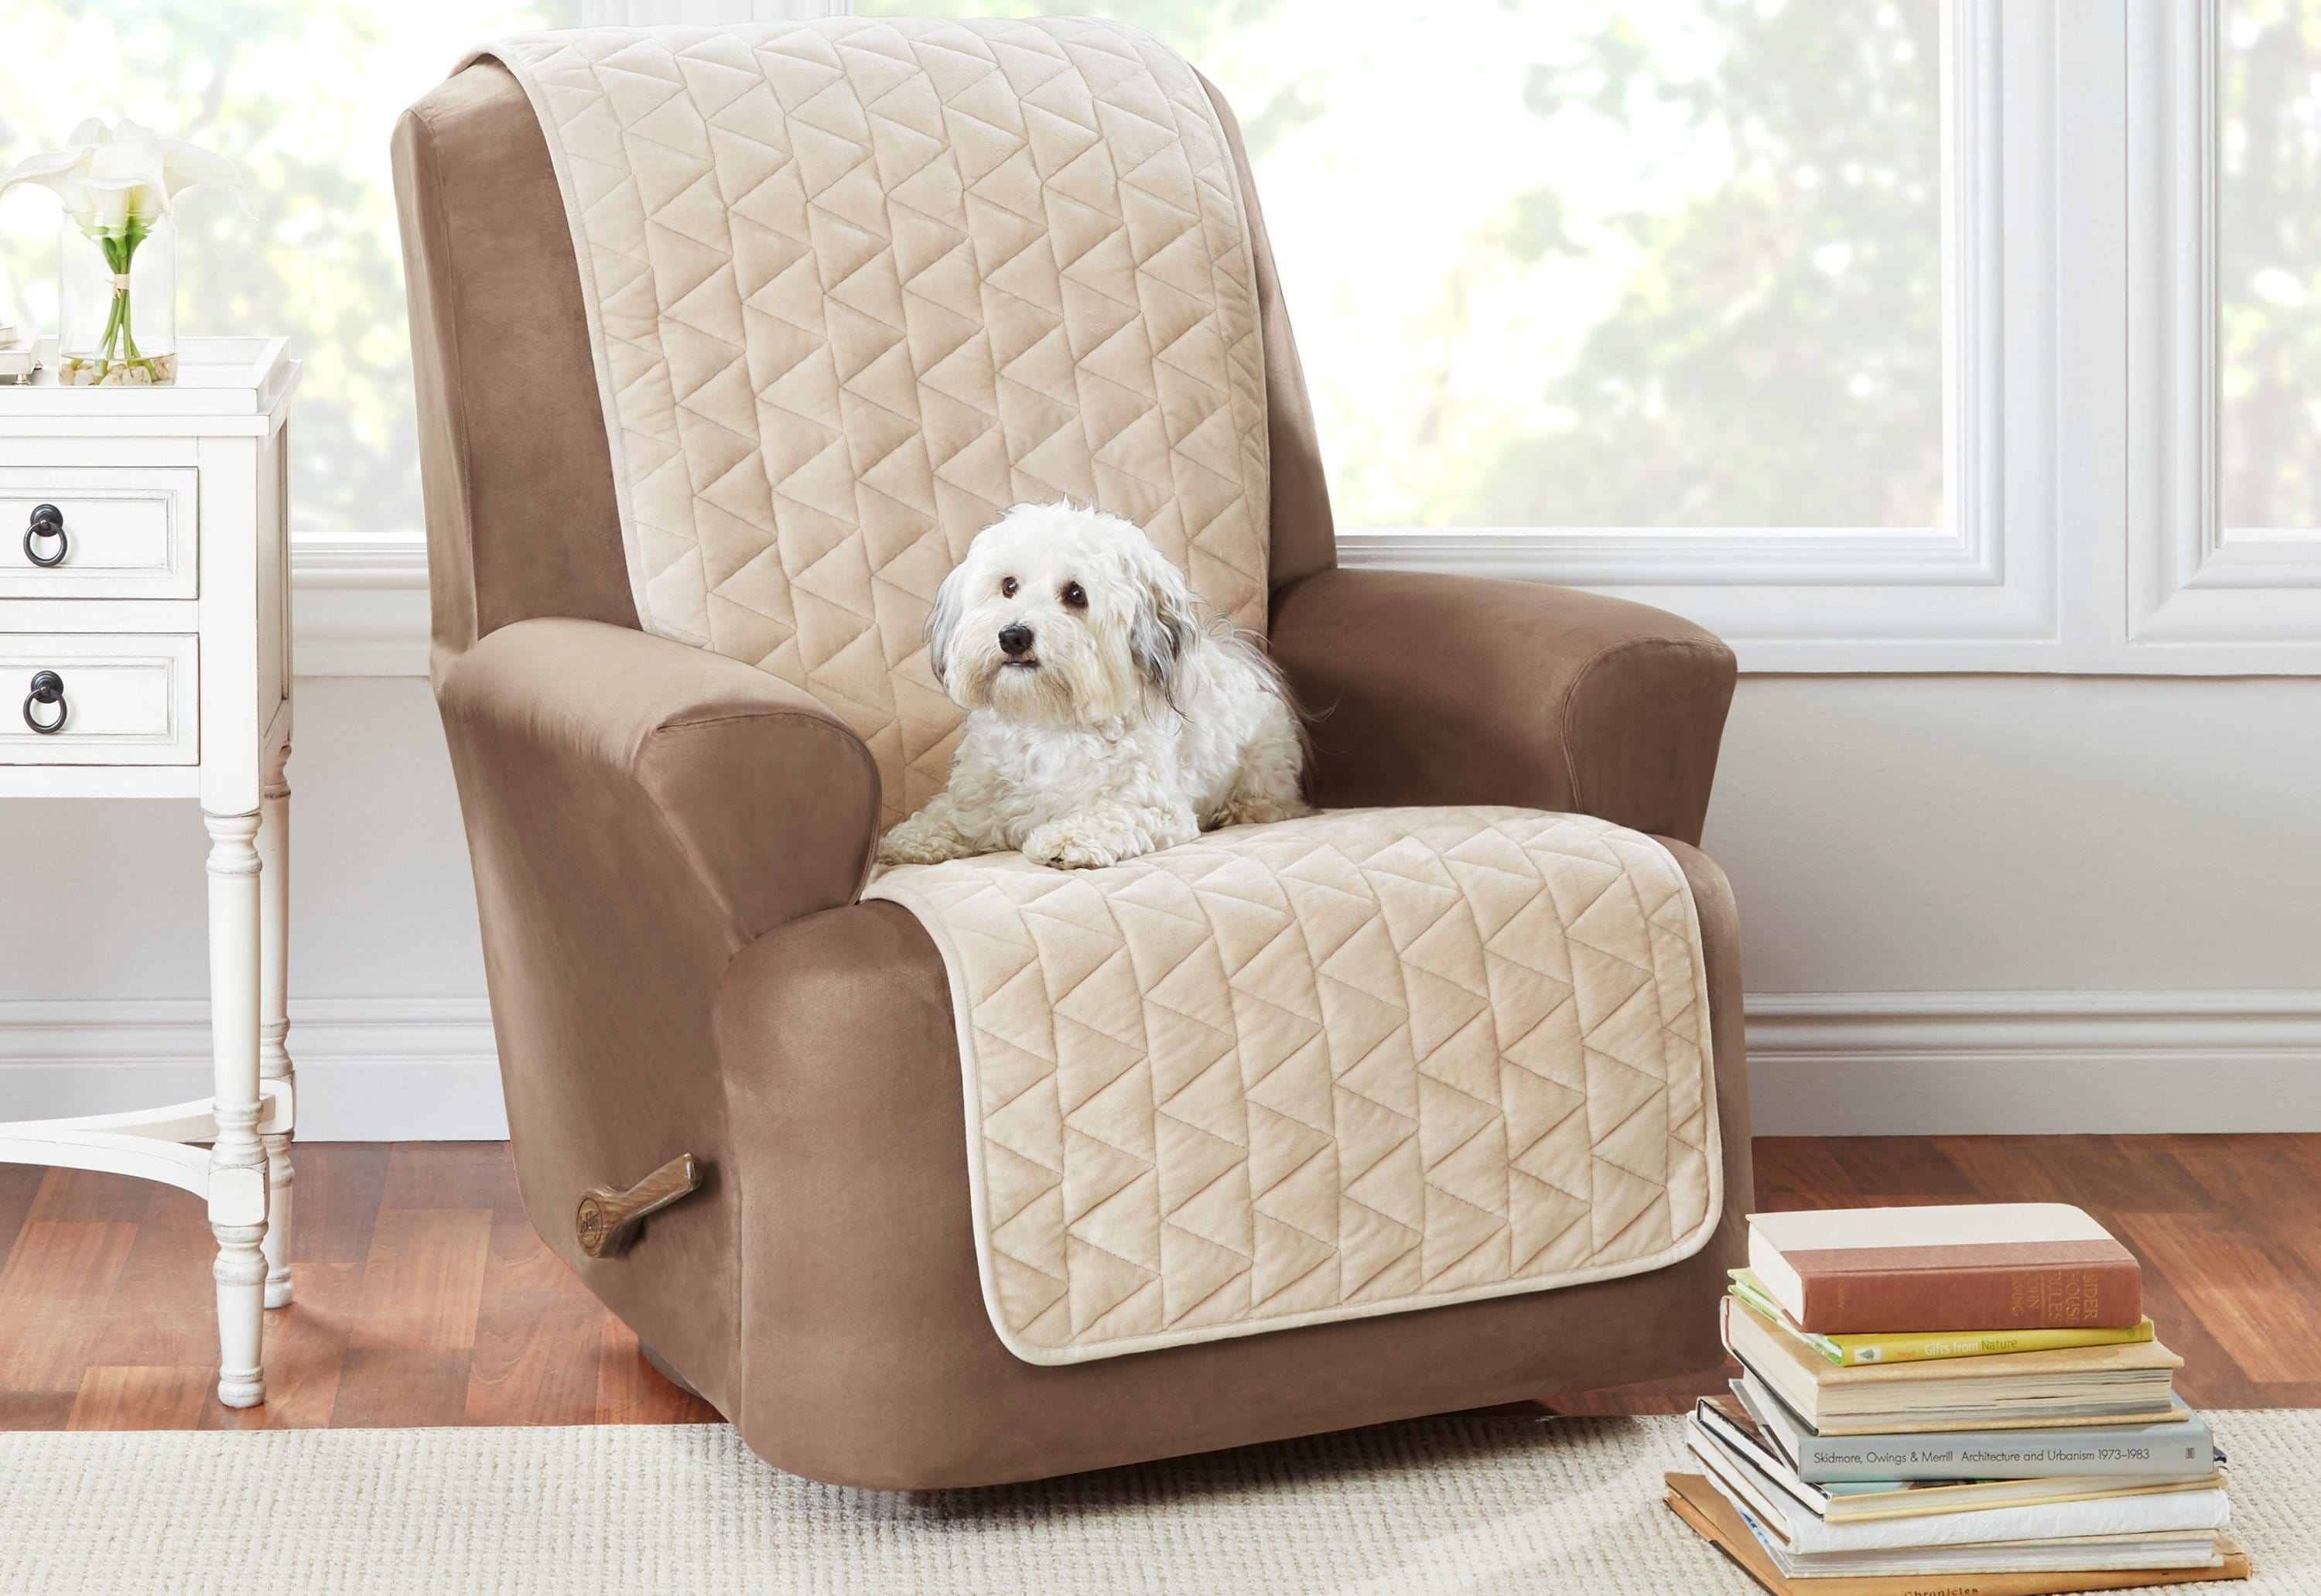 Armless Recliner Furniture Cover Pet Furniture Cover 100% Polyester Machine Washable - Recliner / Taupe